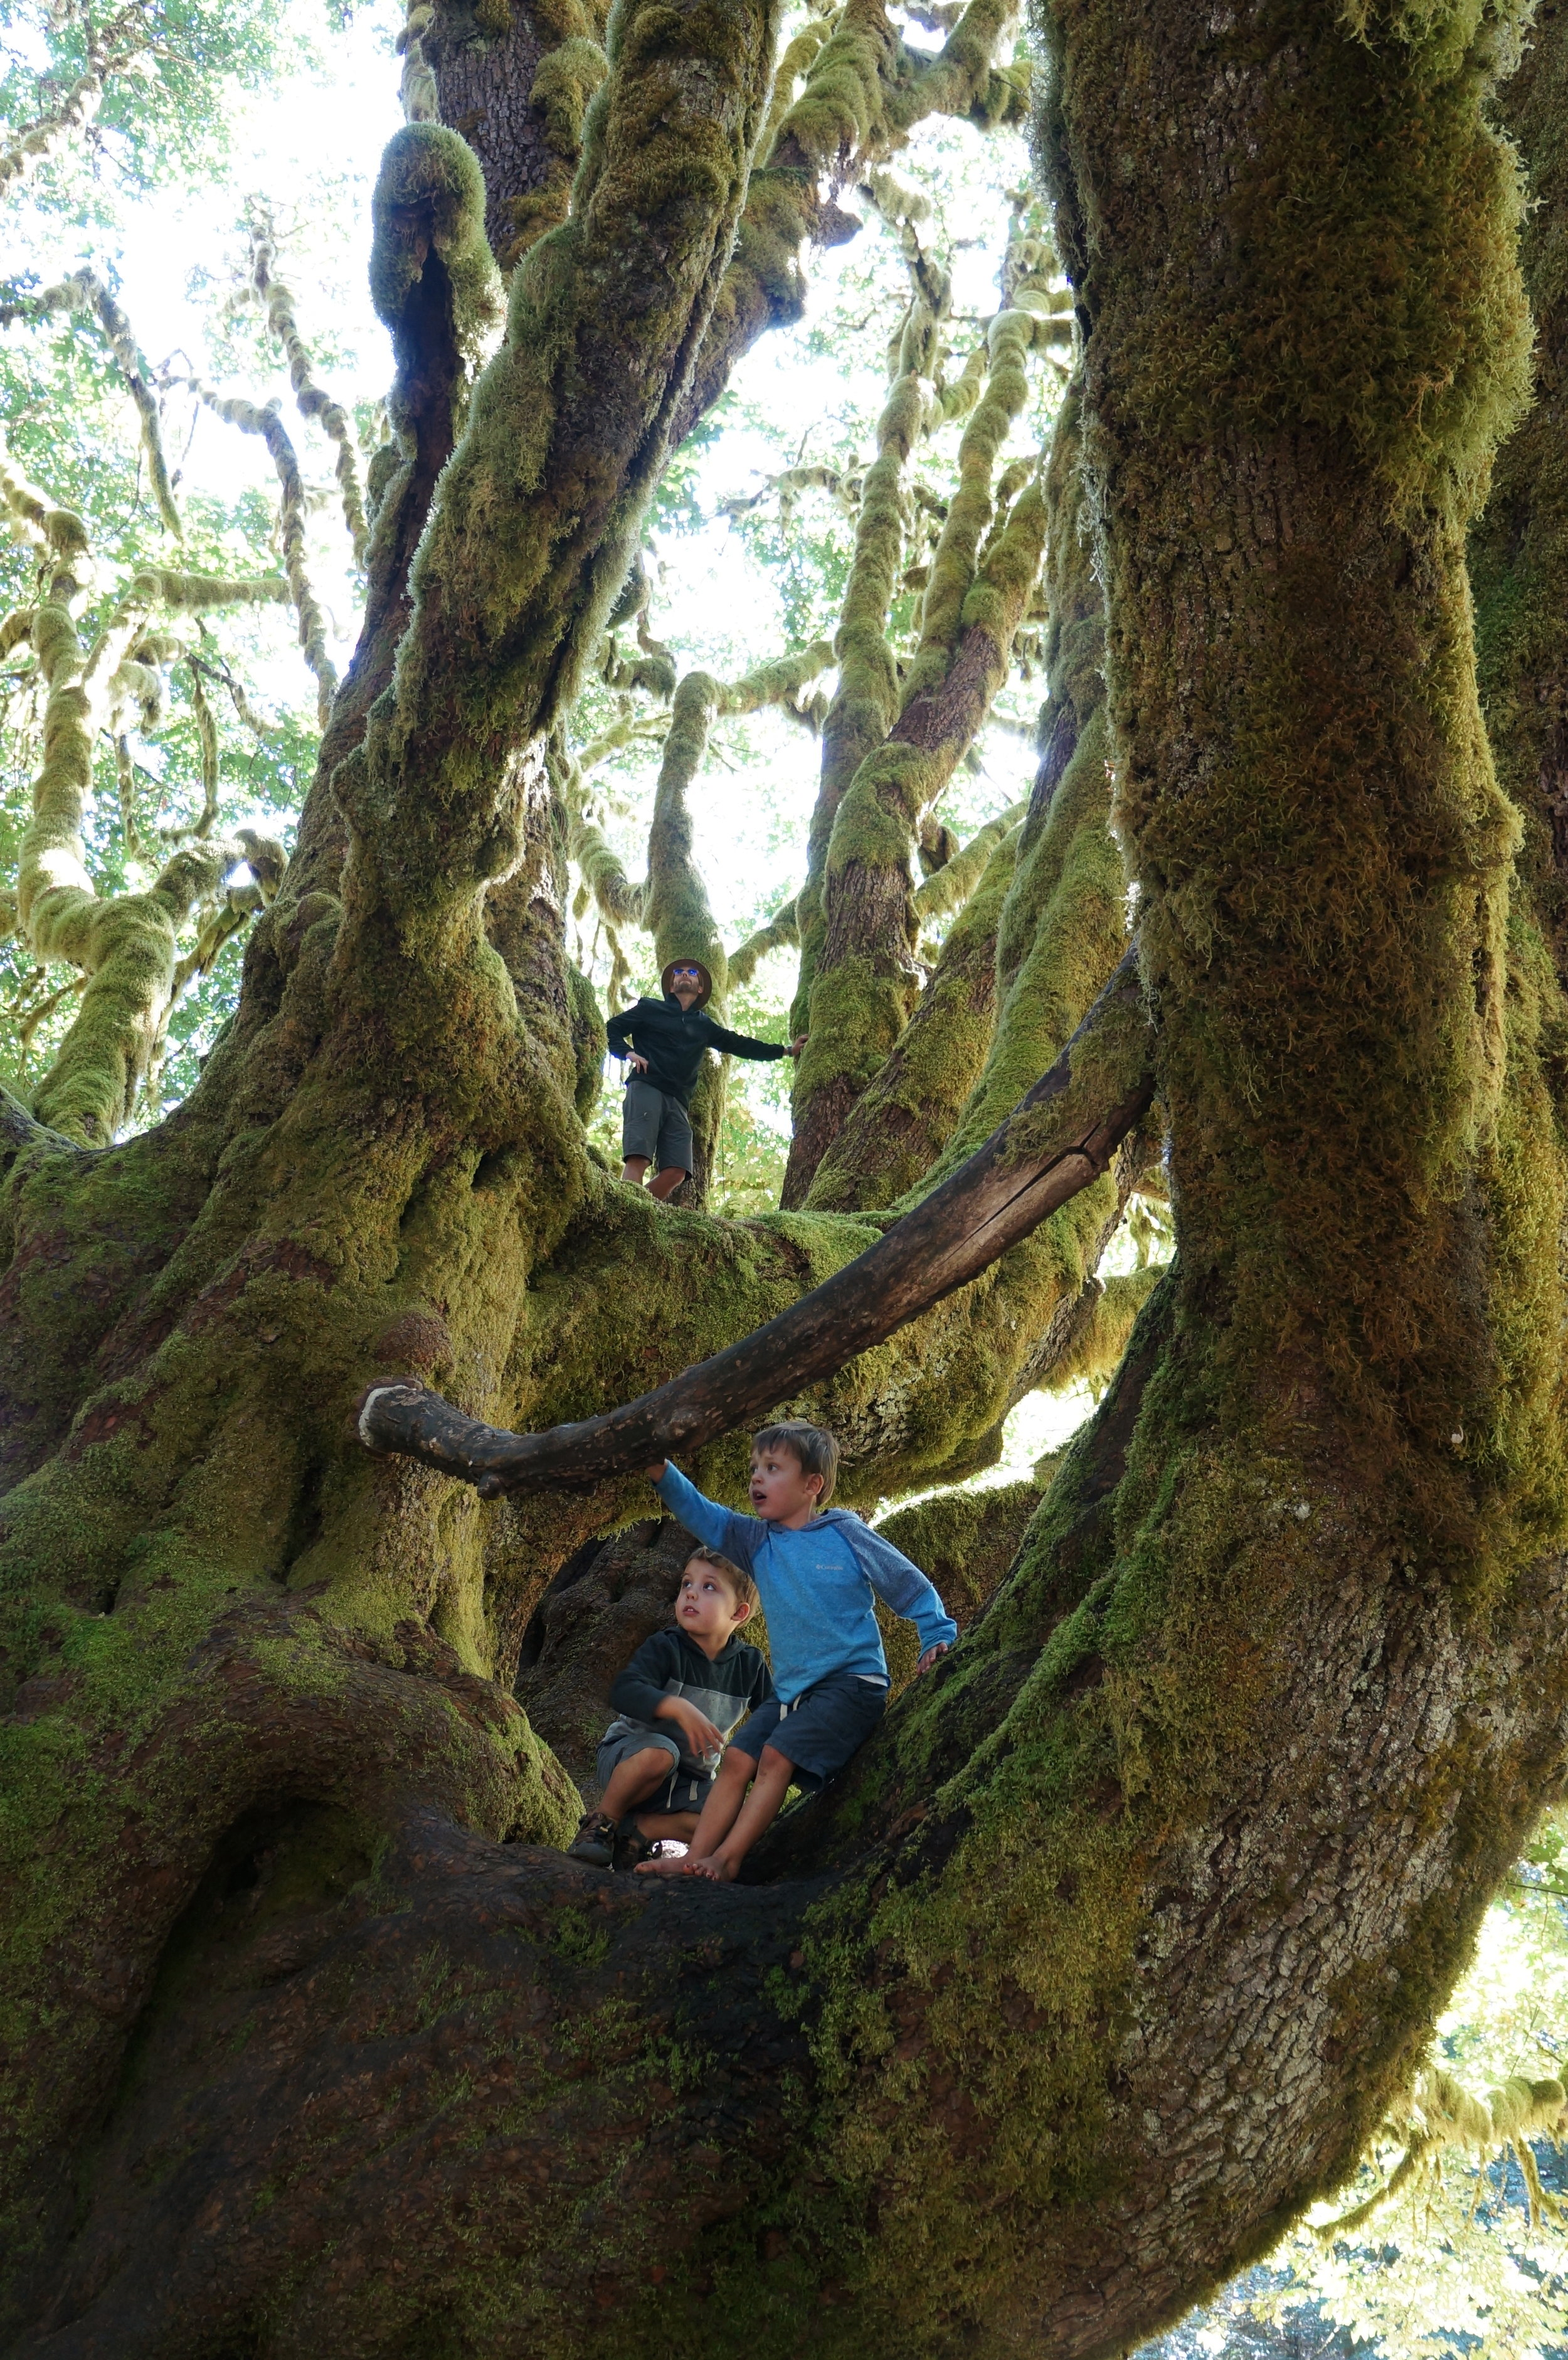 A Tree Fit For Climbing!